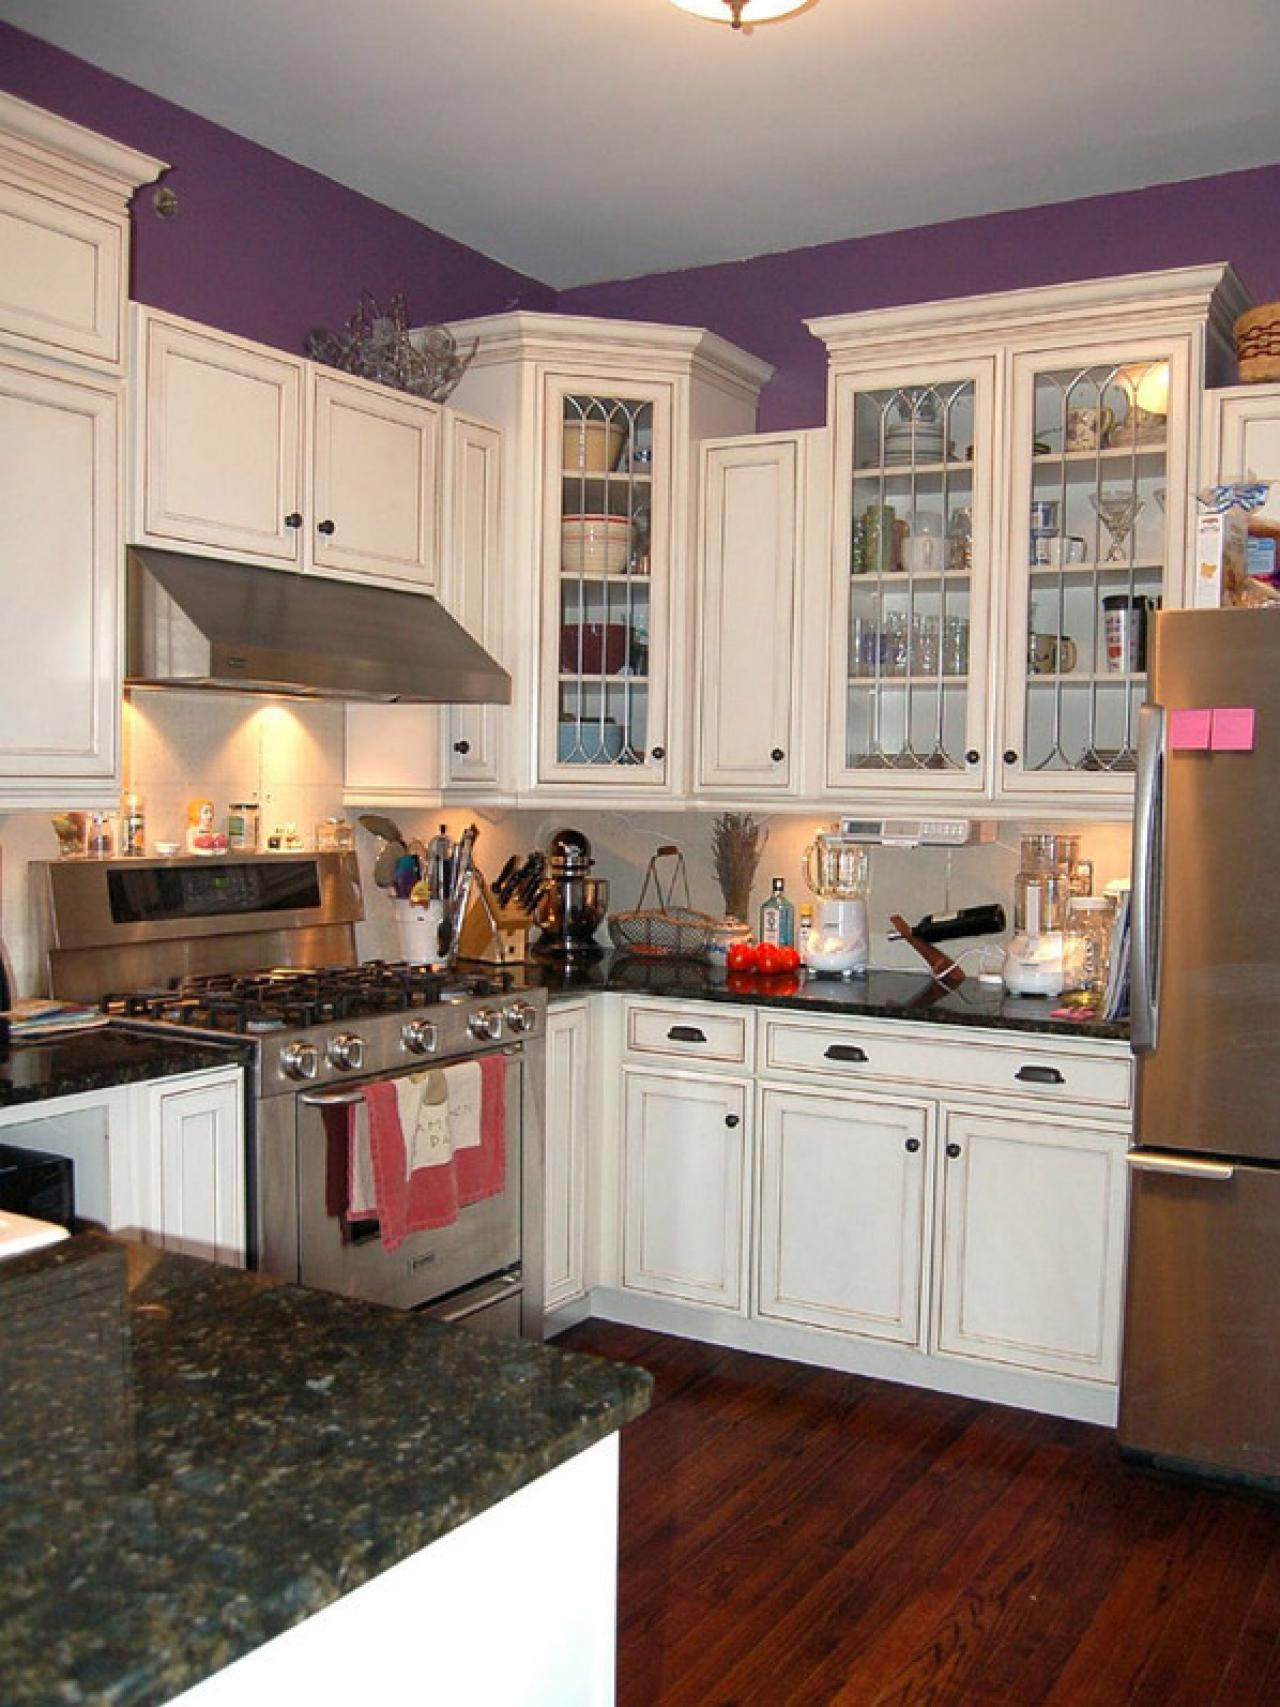 Small kitchen decorating ideas pictures tips from hgtv kitchen ideas design with cabinets - Kitchen cupboards ideas ...